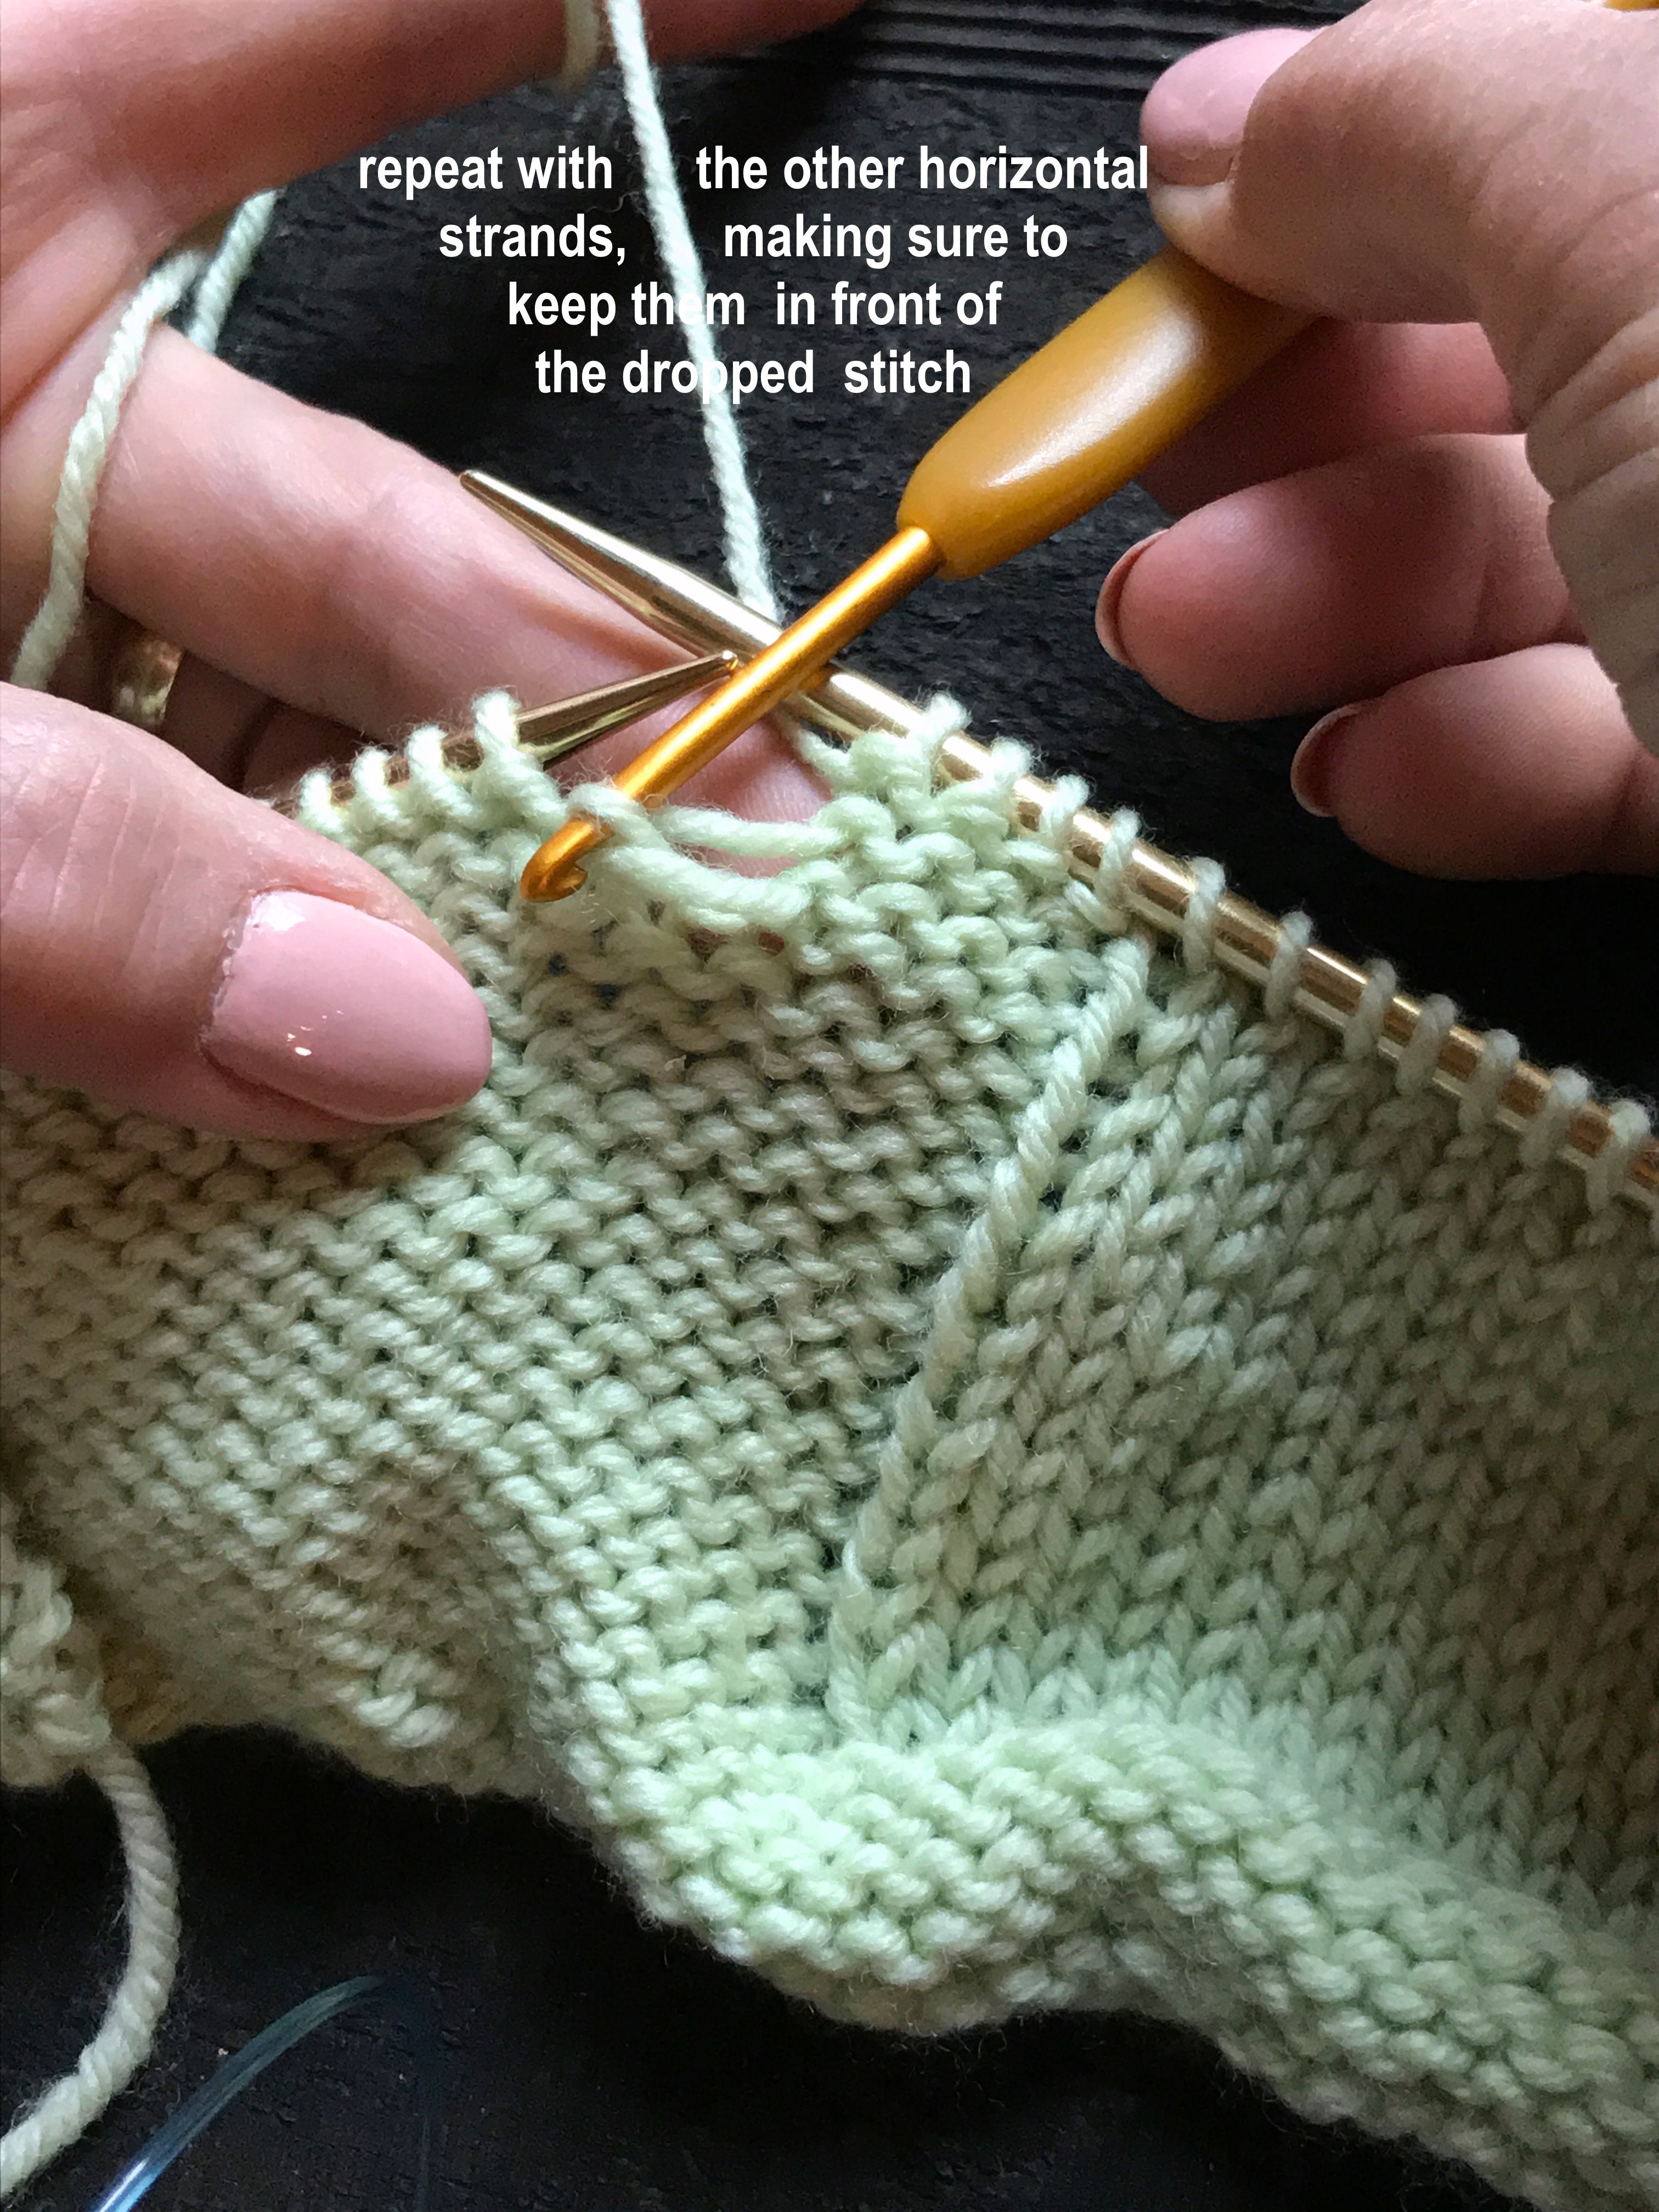 How to Pick Up Dropped Stitches in Your Knitting